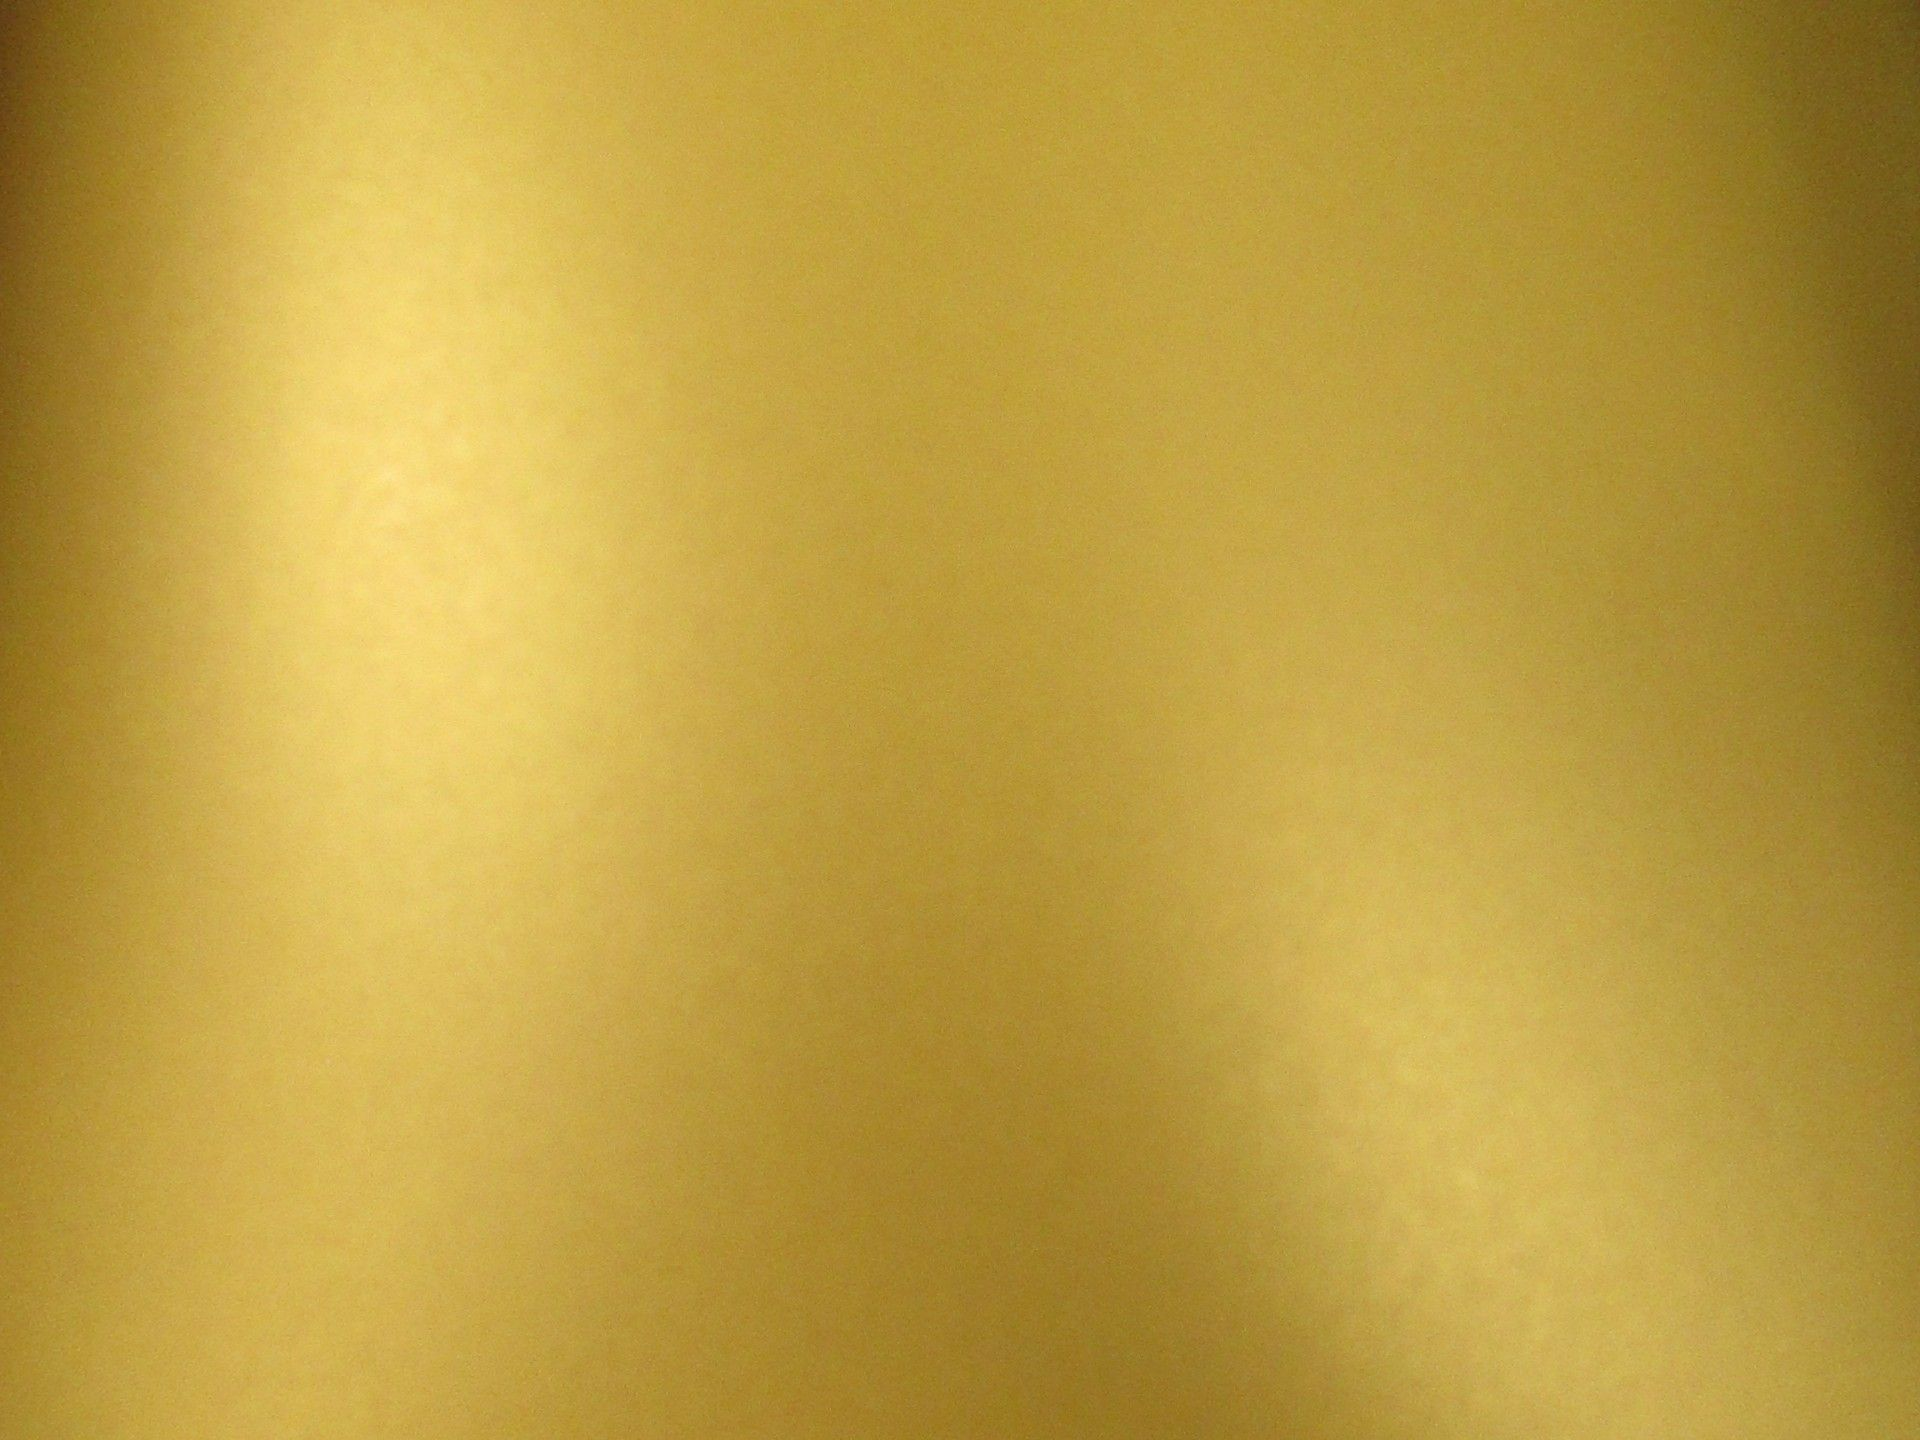 Download 74 Koleksi Background Gold Paling Keren